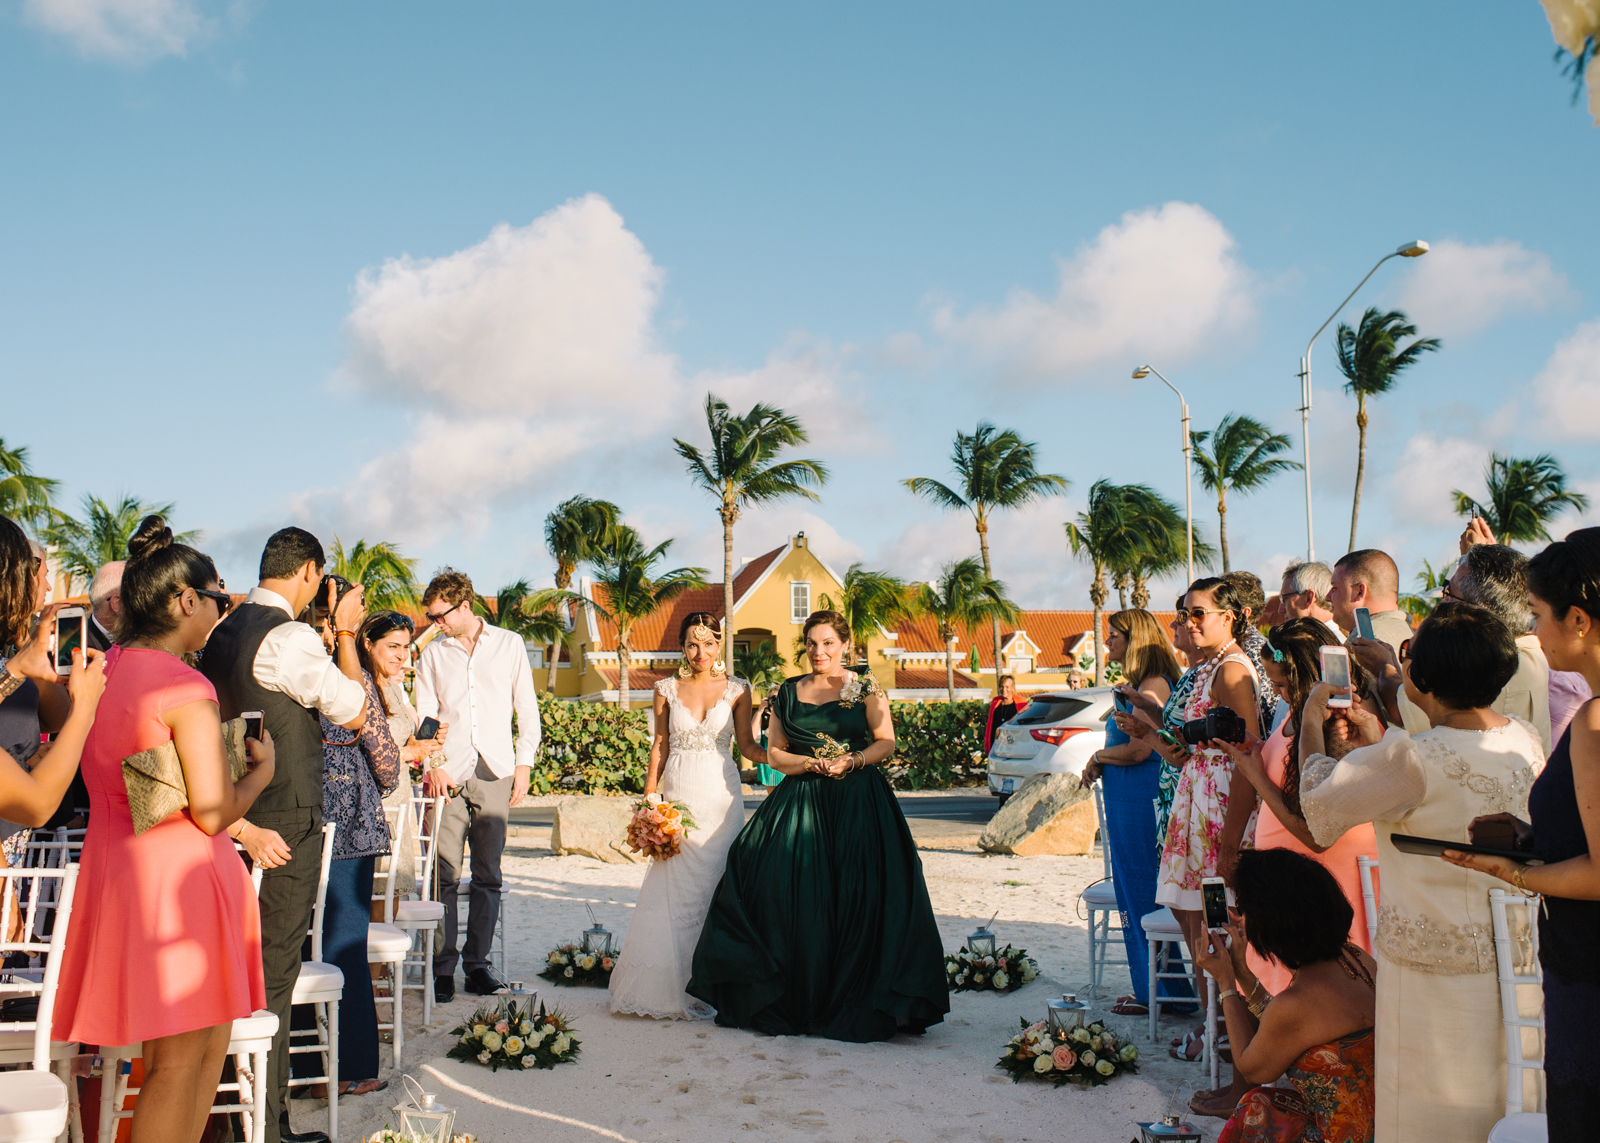 tara mcmullen photography amsterdam manor hotel wedding in aruba best wedding venue in aruba destination wedding photographer aruba indian wedding in aruba-018